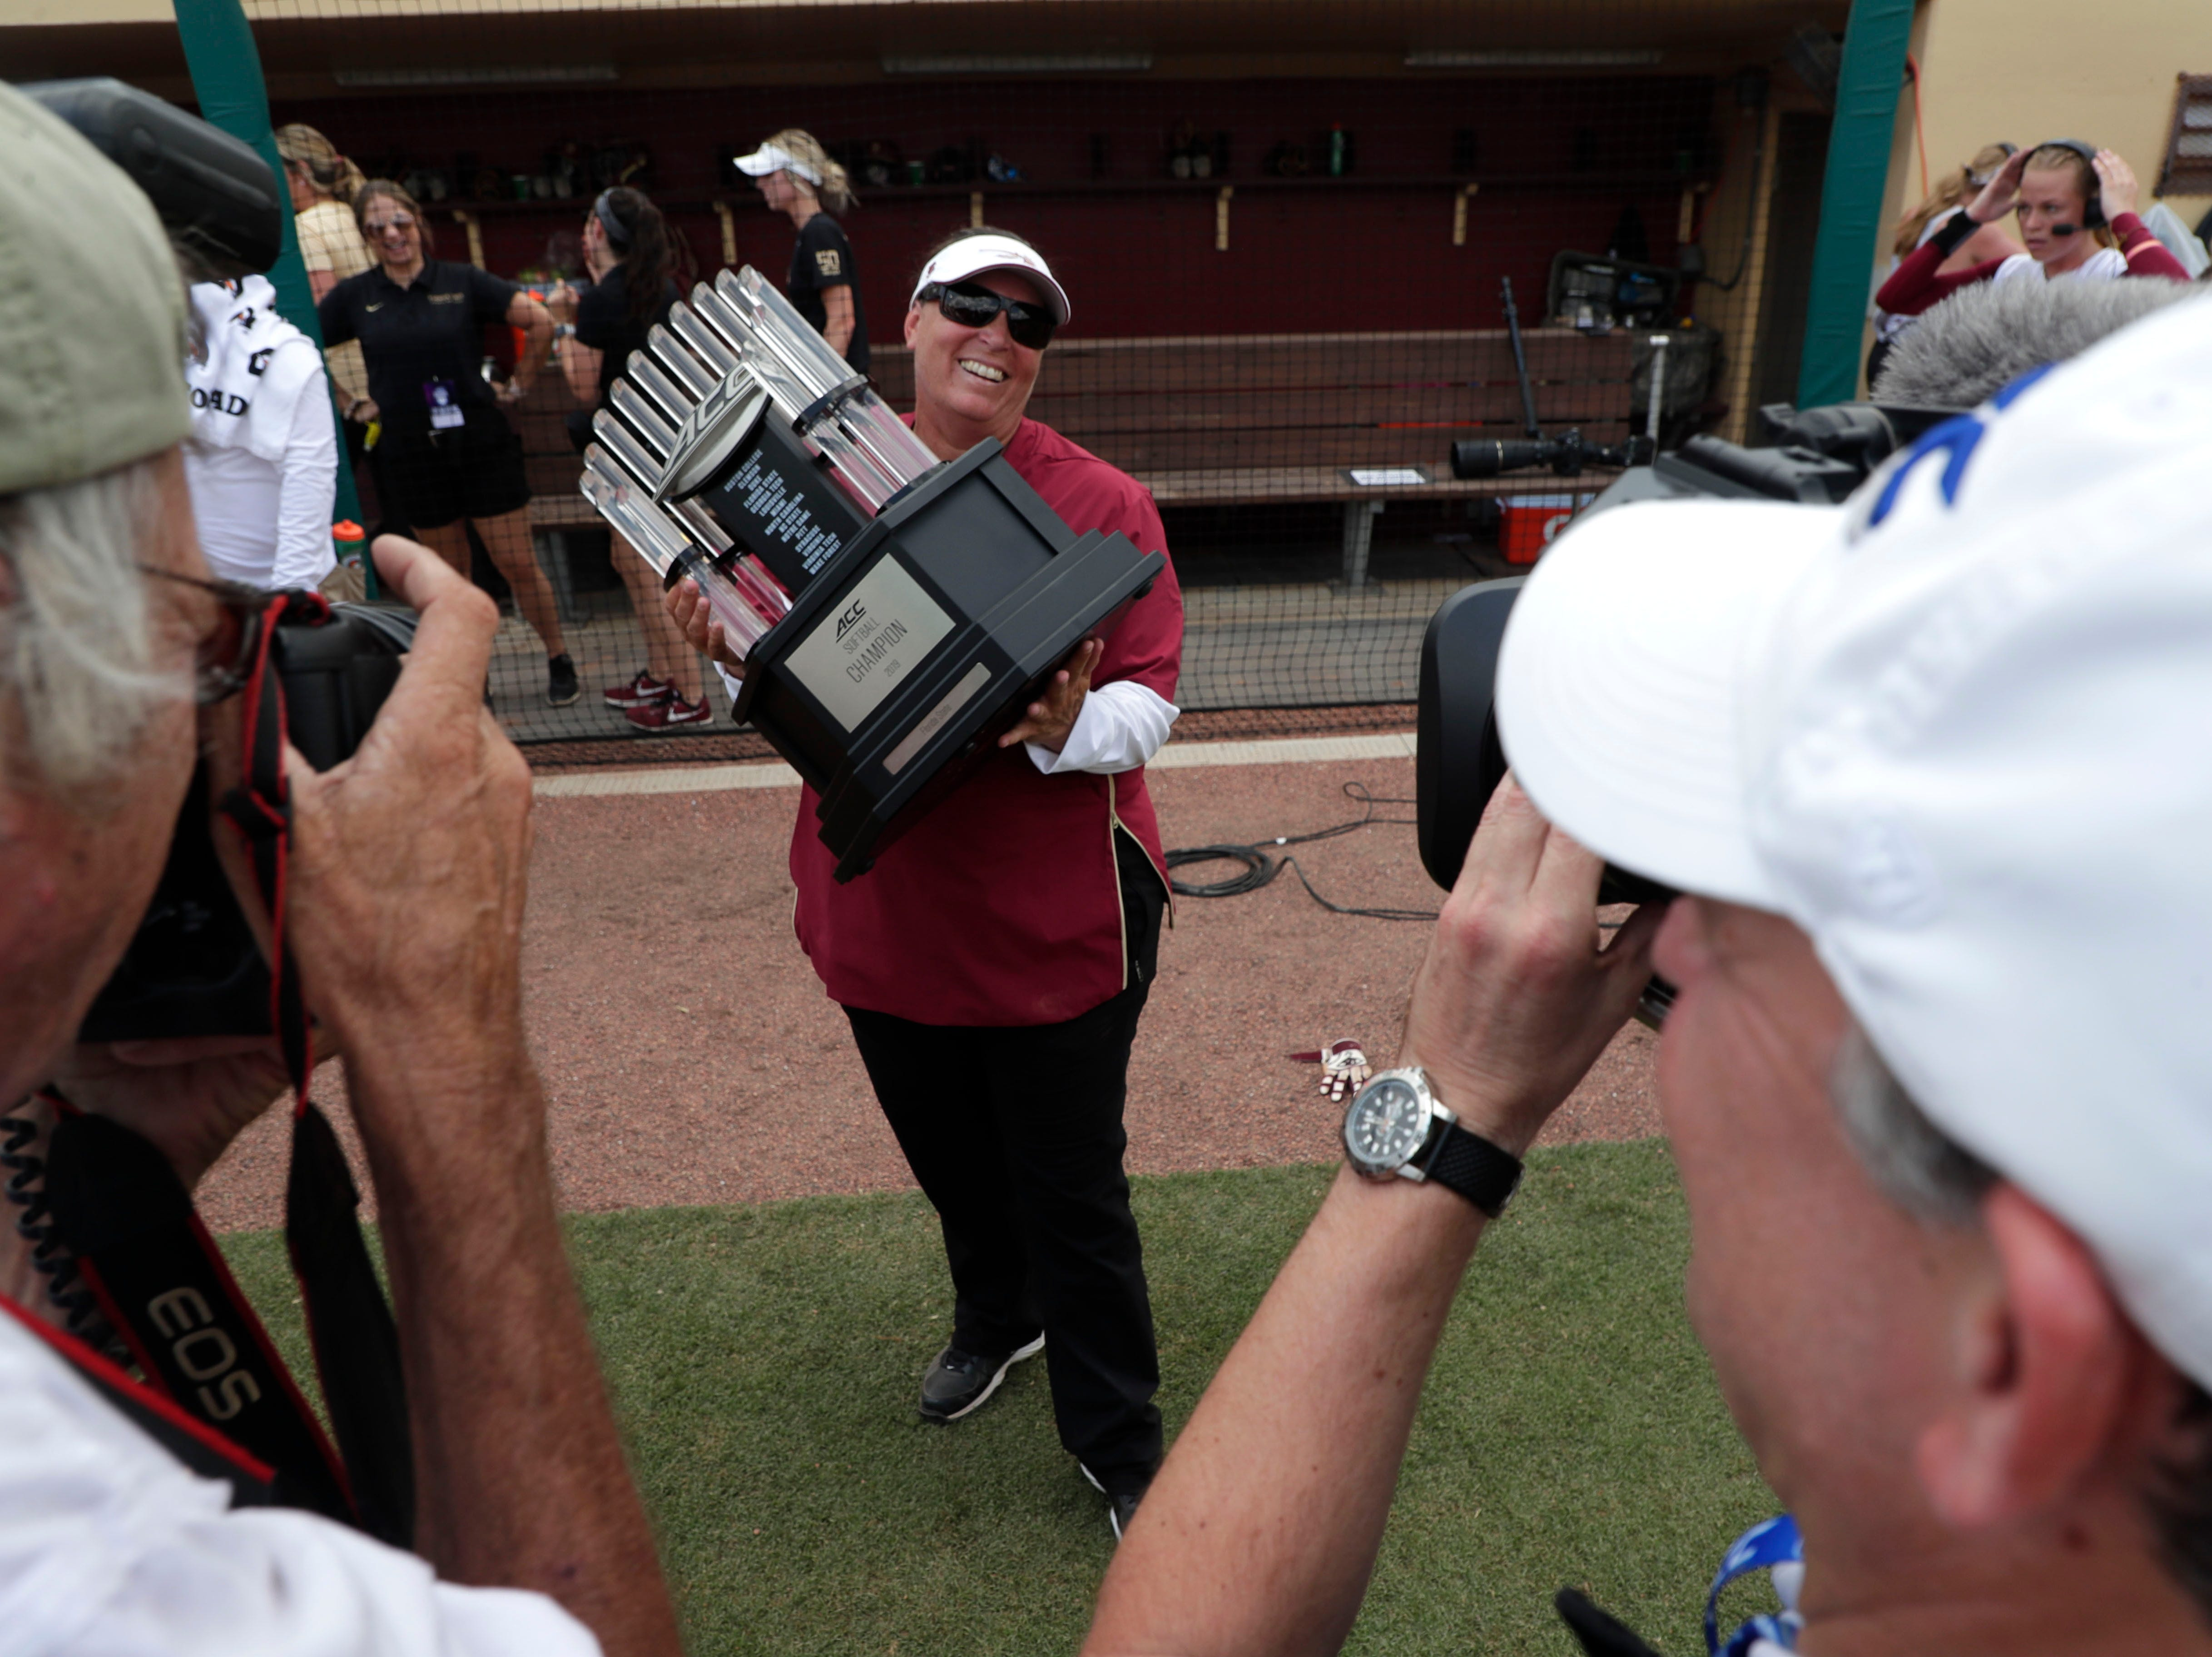 Florida State Seminoles head coach Lonni Alameda holds the championship trophy. The Florida State Seminoles celebrate their victory over the UNC Tar Heels for the ACC Softball Championship title Saturday, May 11, 2019.